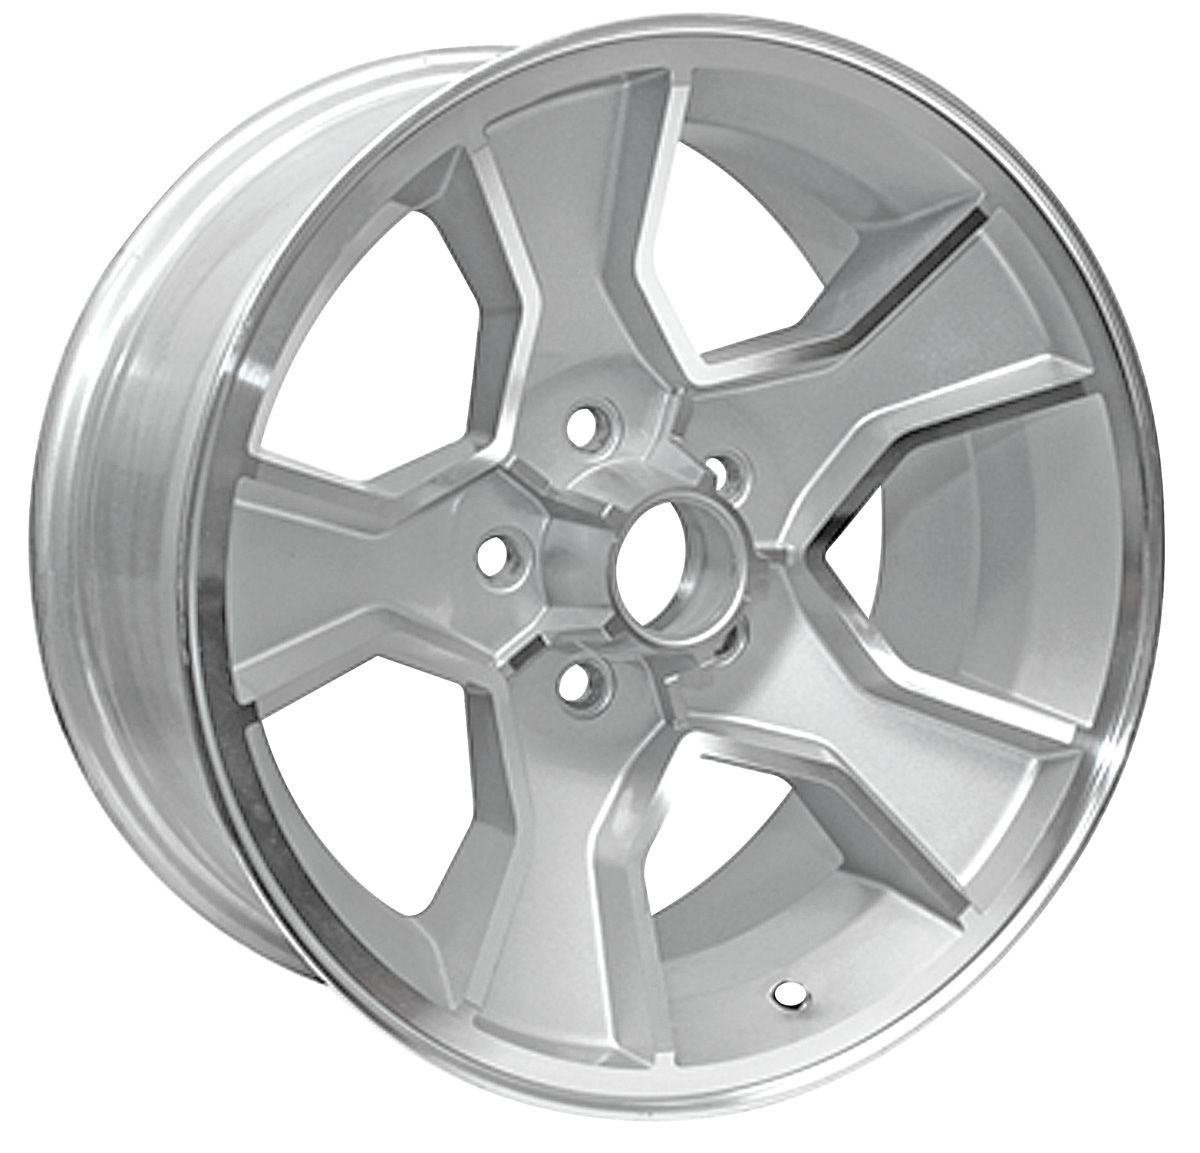 "Photo of Wheel, N90 (Monte Carlo) silver, 17"" x 8"" (B.S. 4.25"")"